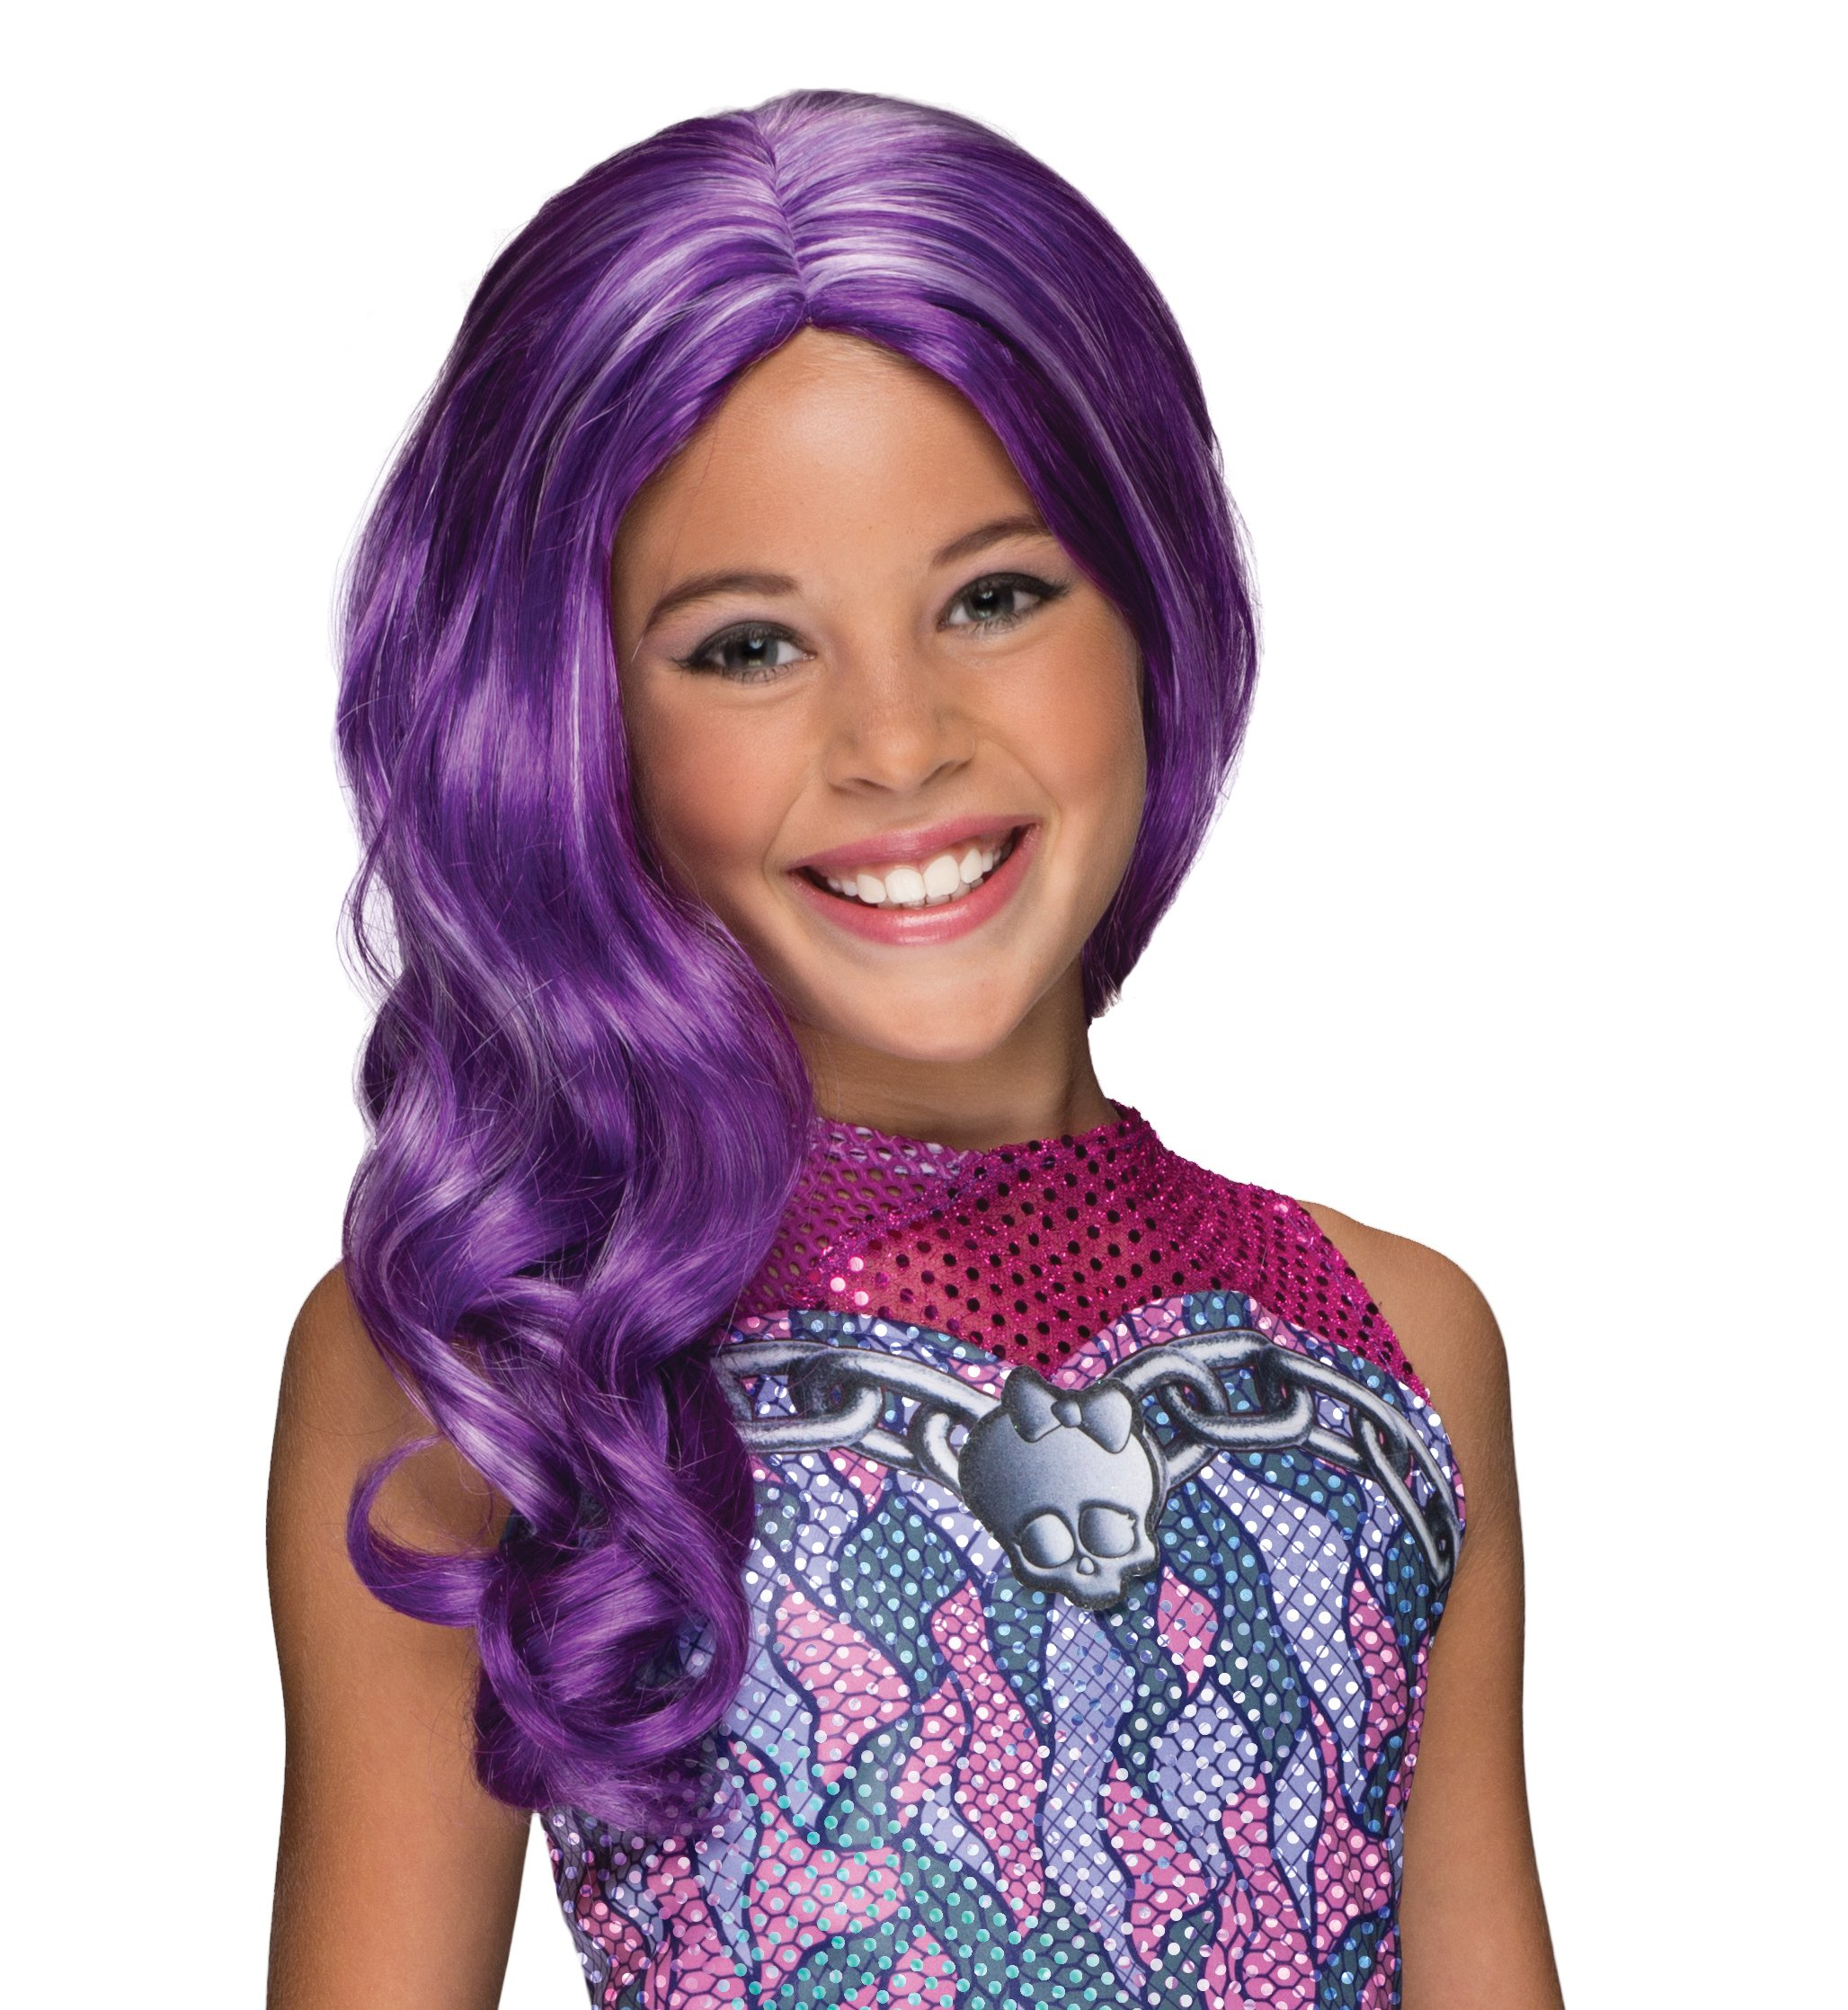 Rubie's Costume Haunted Spectra Vondergeist Child Wig